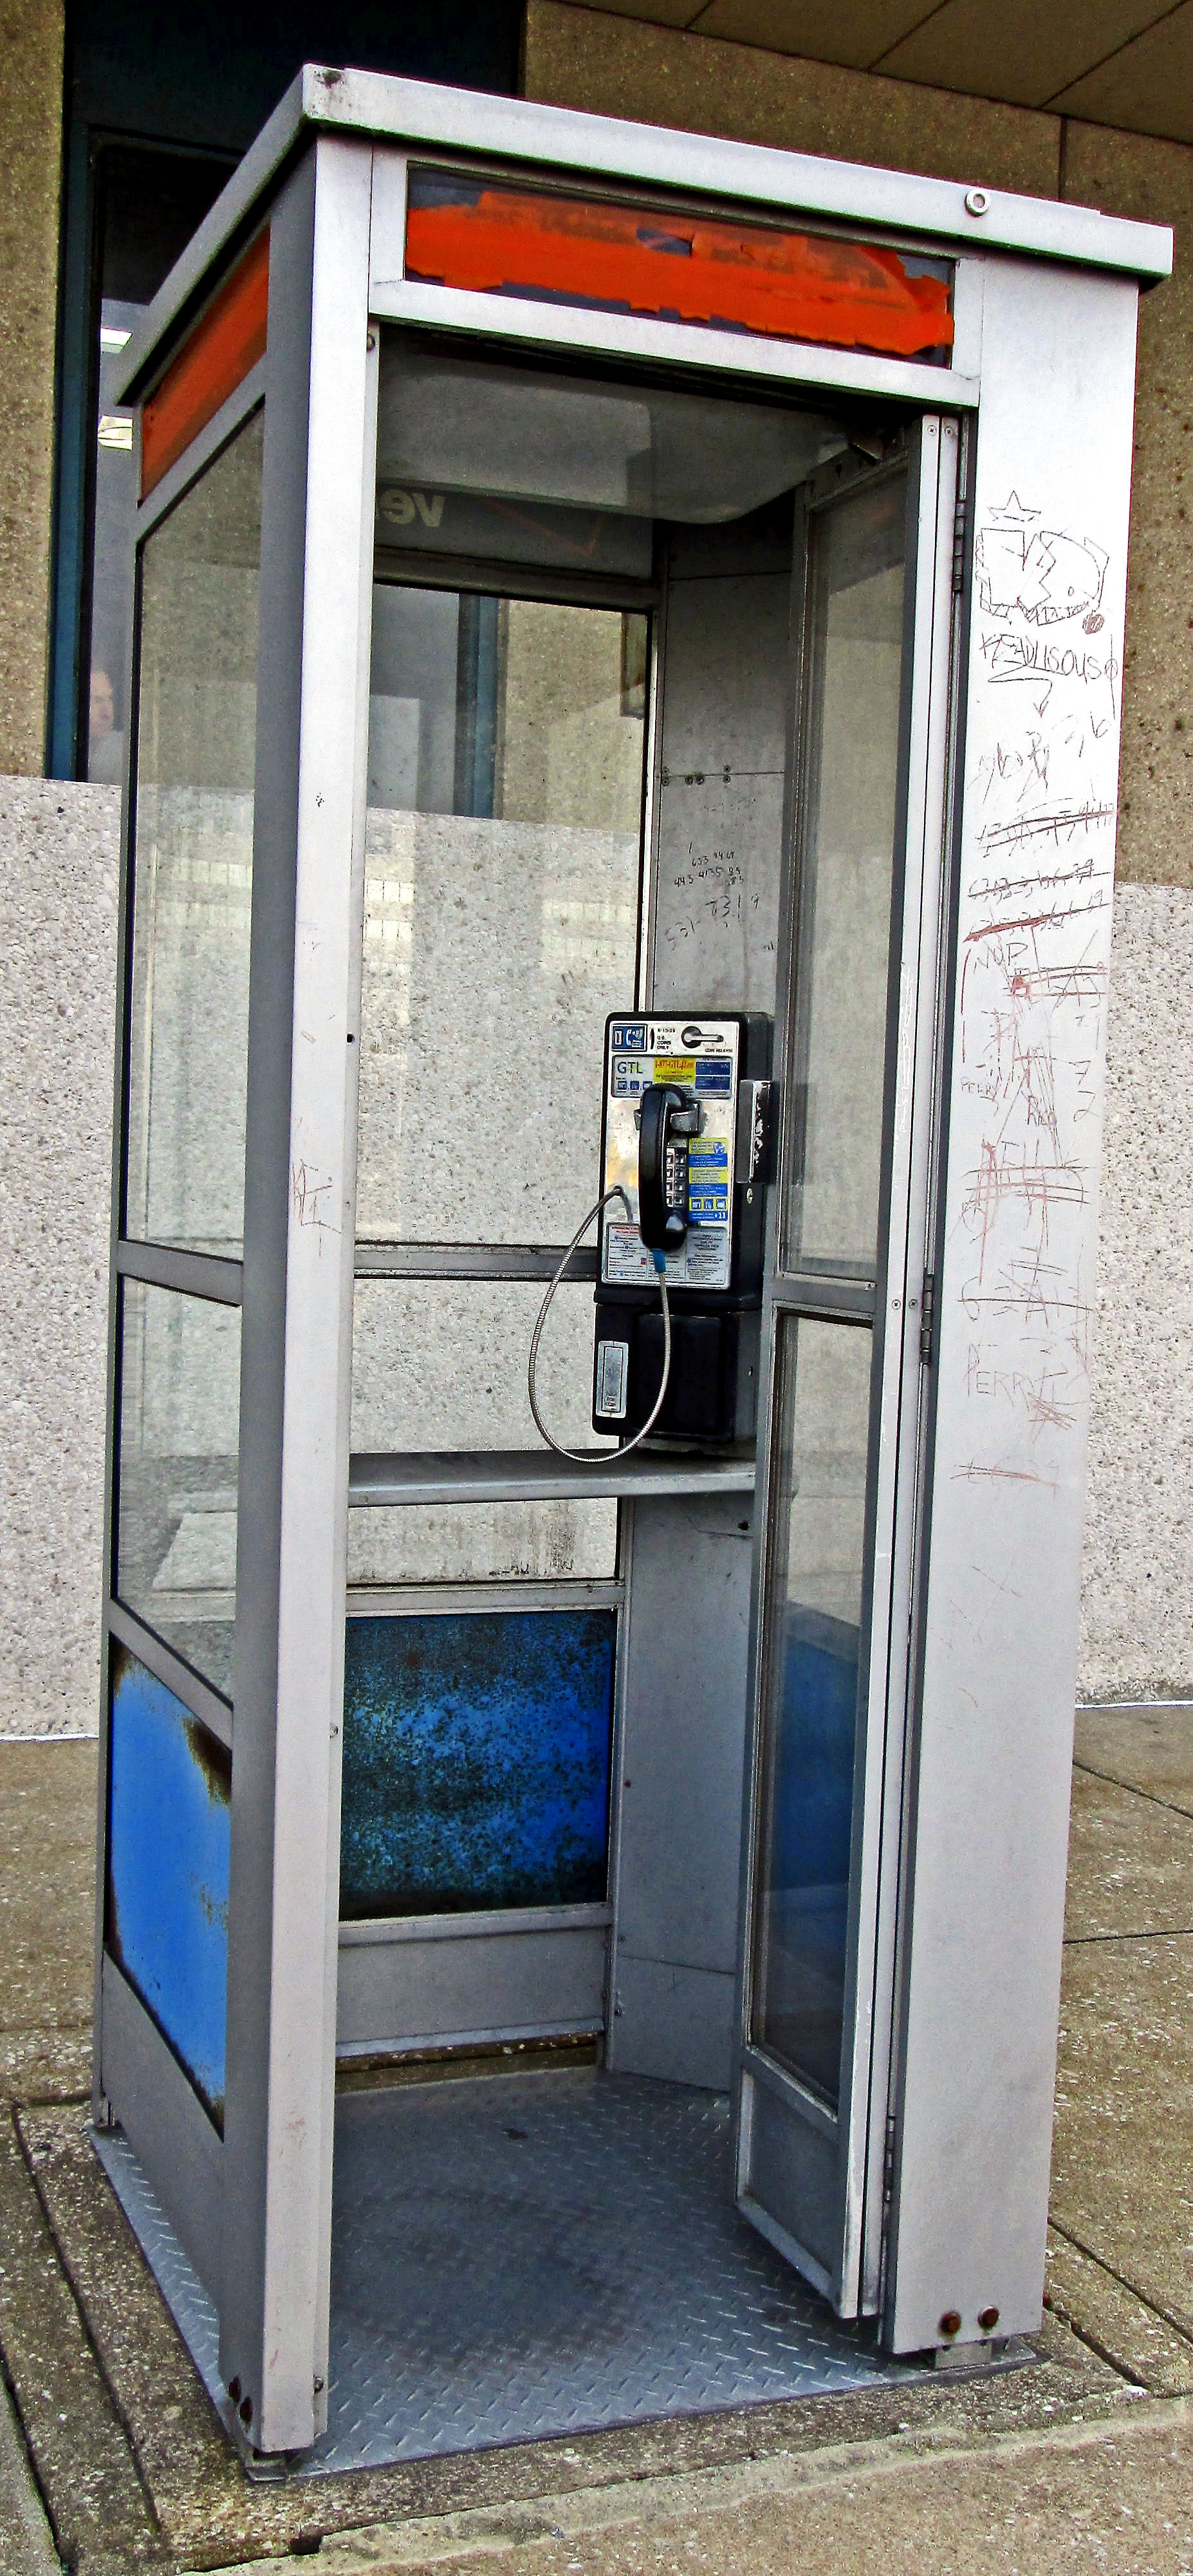 Old Pay Phone Booth With Open Hinge Door